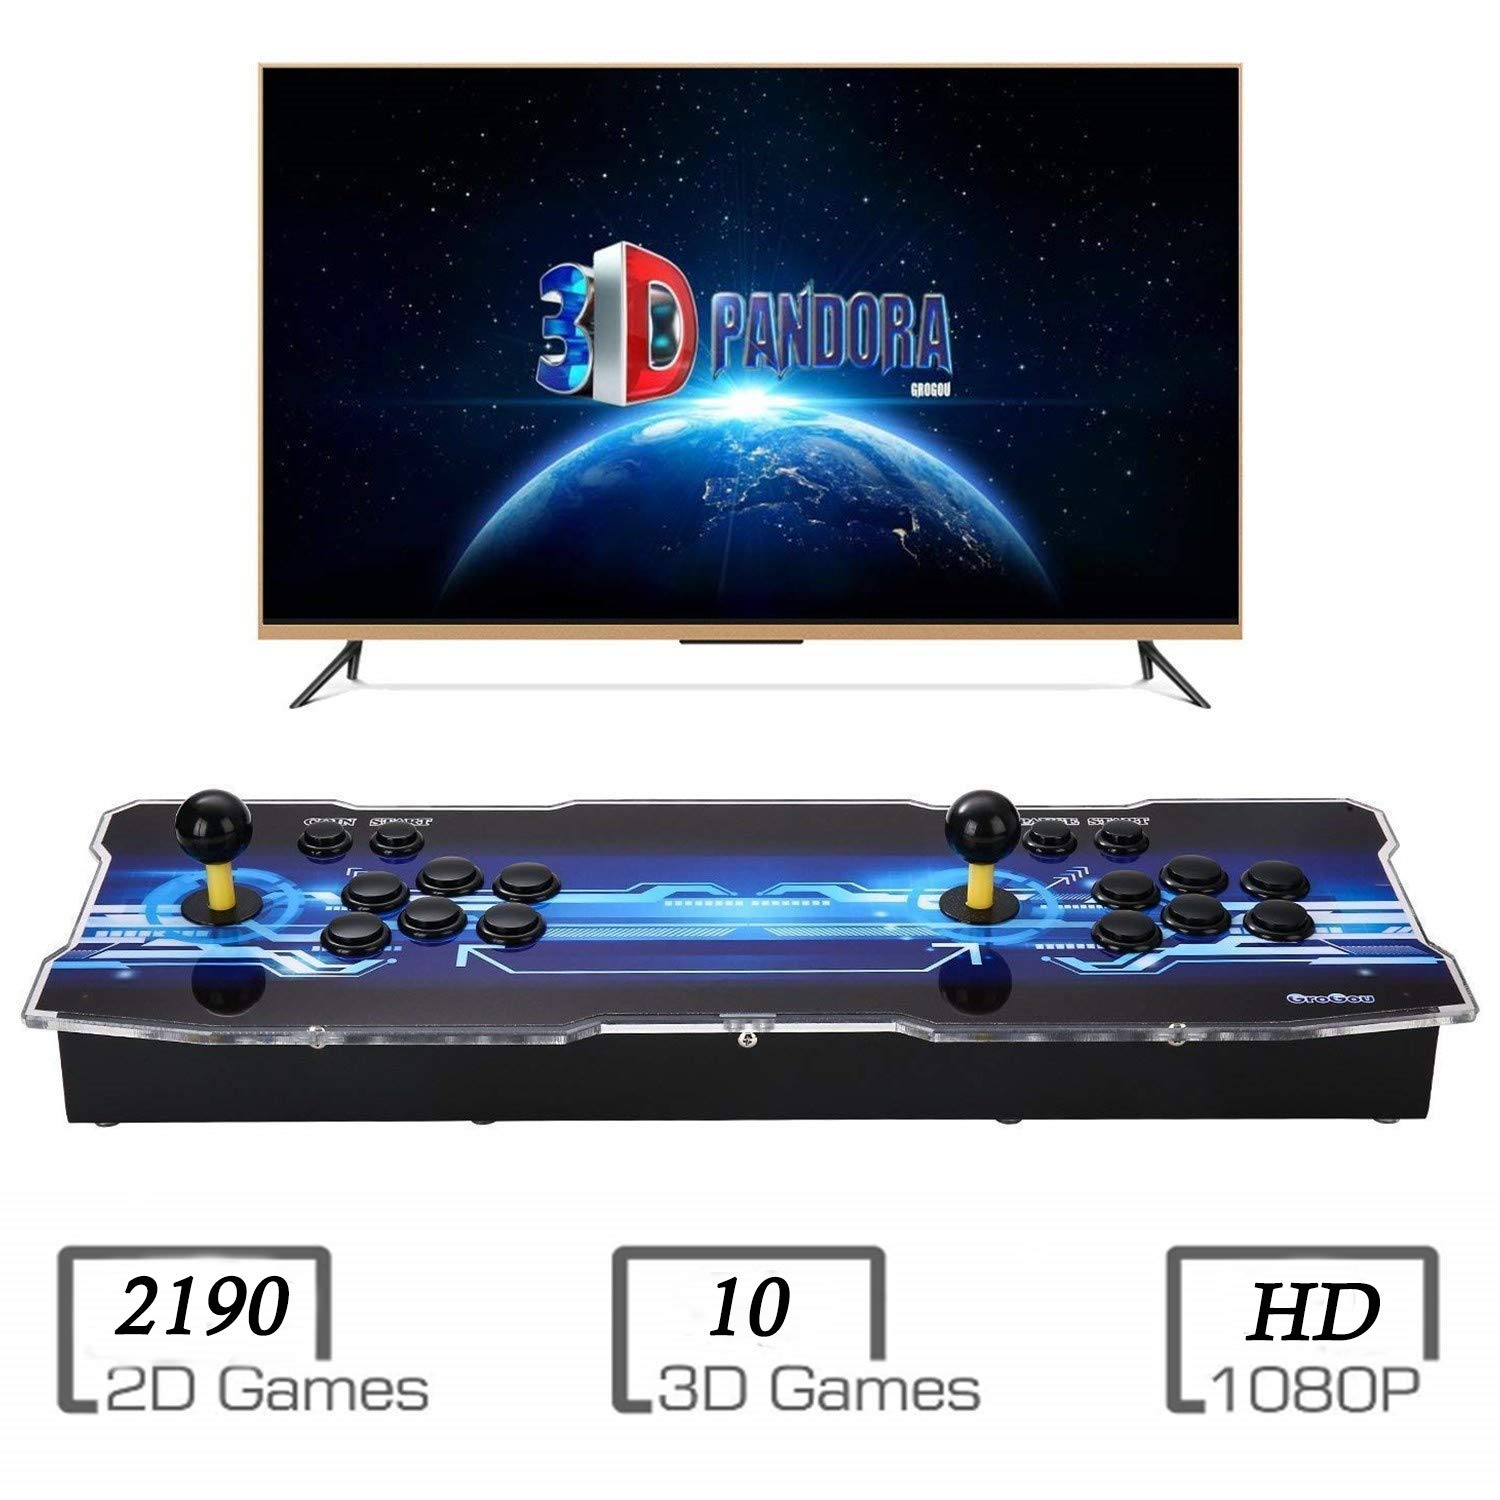 Spmywin 3D Pandora's Box Arcade Video Game Console 2200 Games Arcade Gamepad Expand 3D Games Support with 2 Players by Spmywin (Image #1)